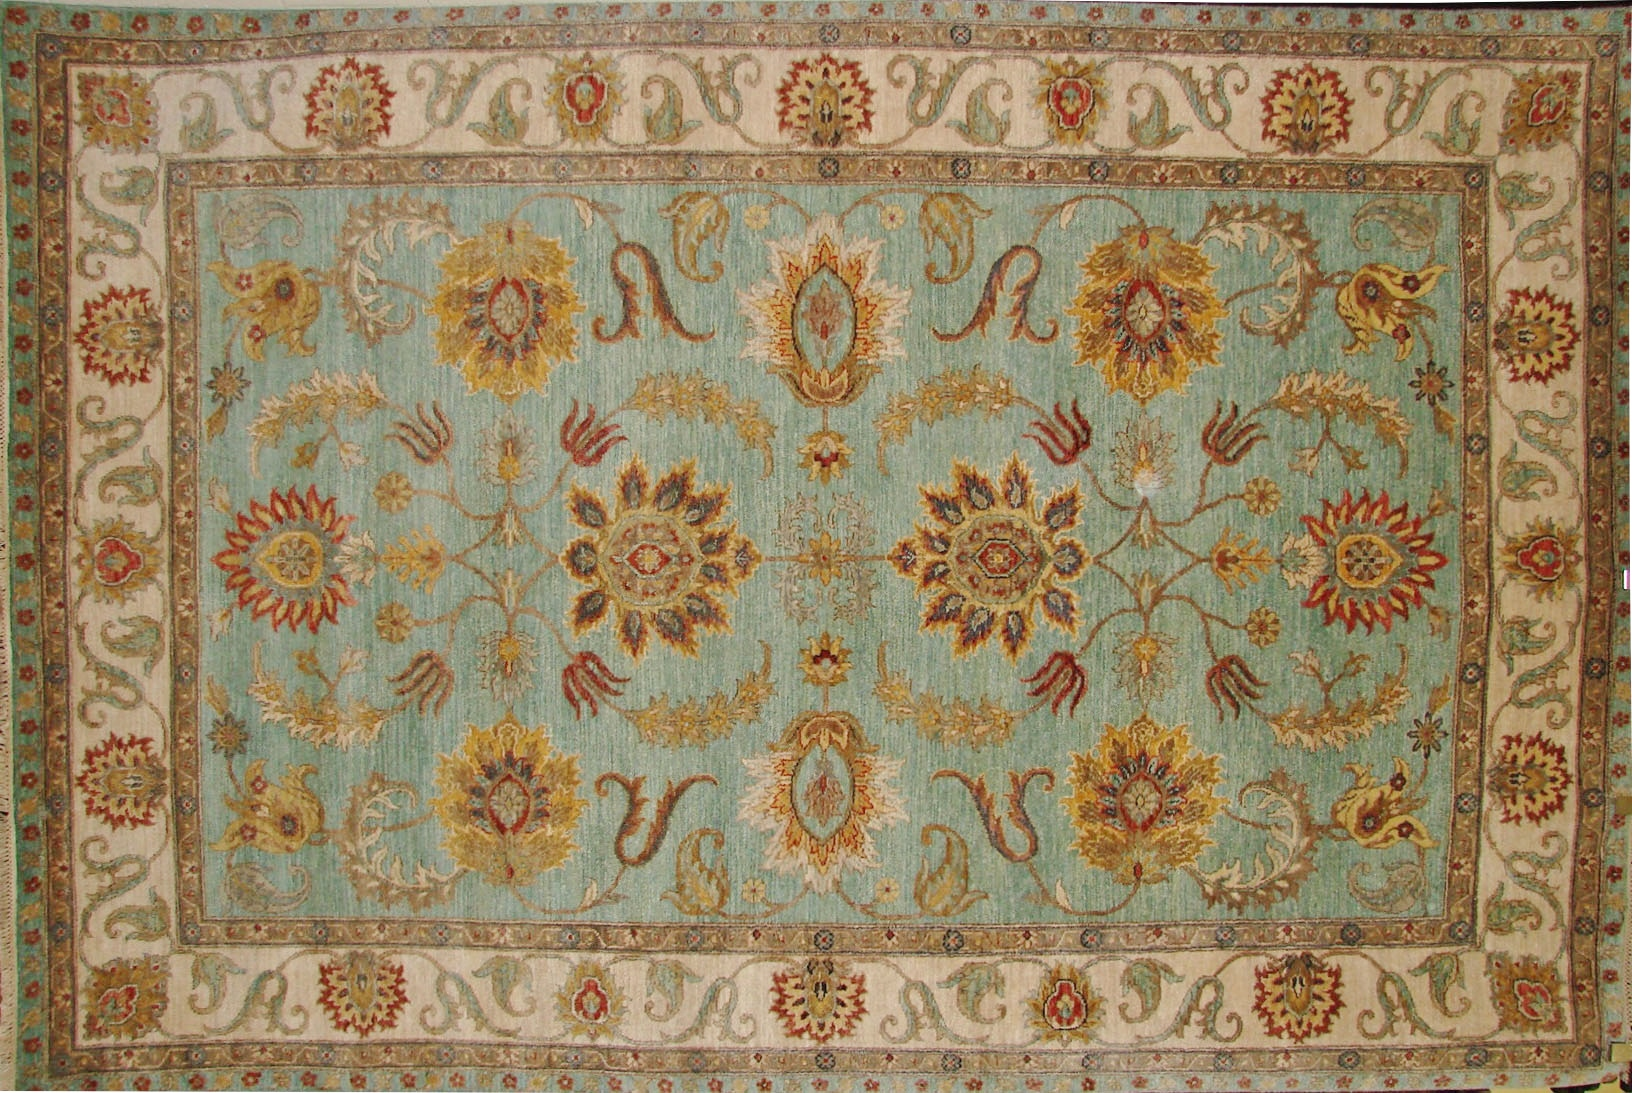 6x9 Traditional Hand Knotted  Area Rug - MR017971